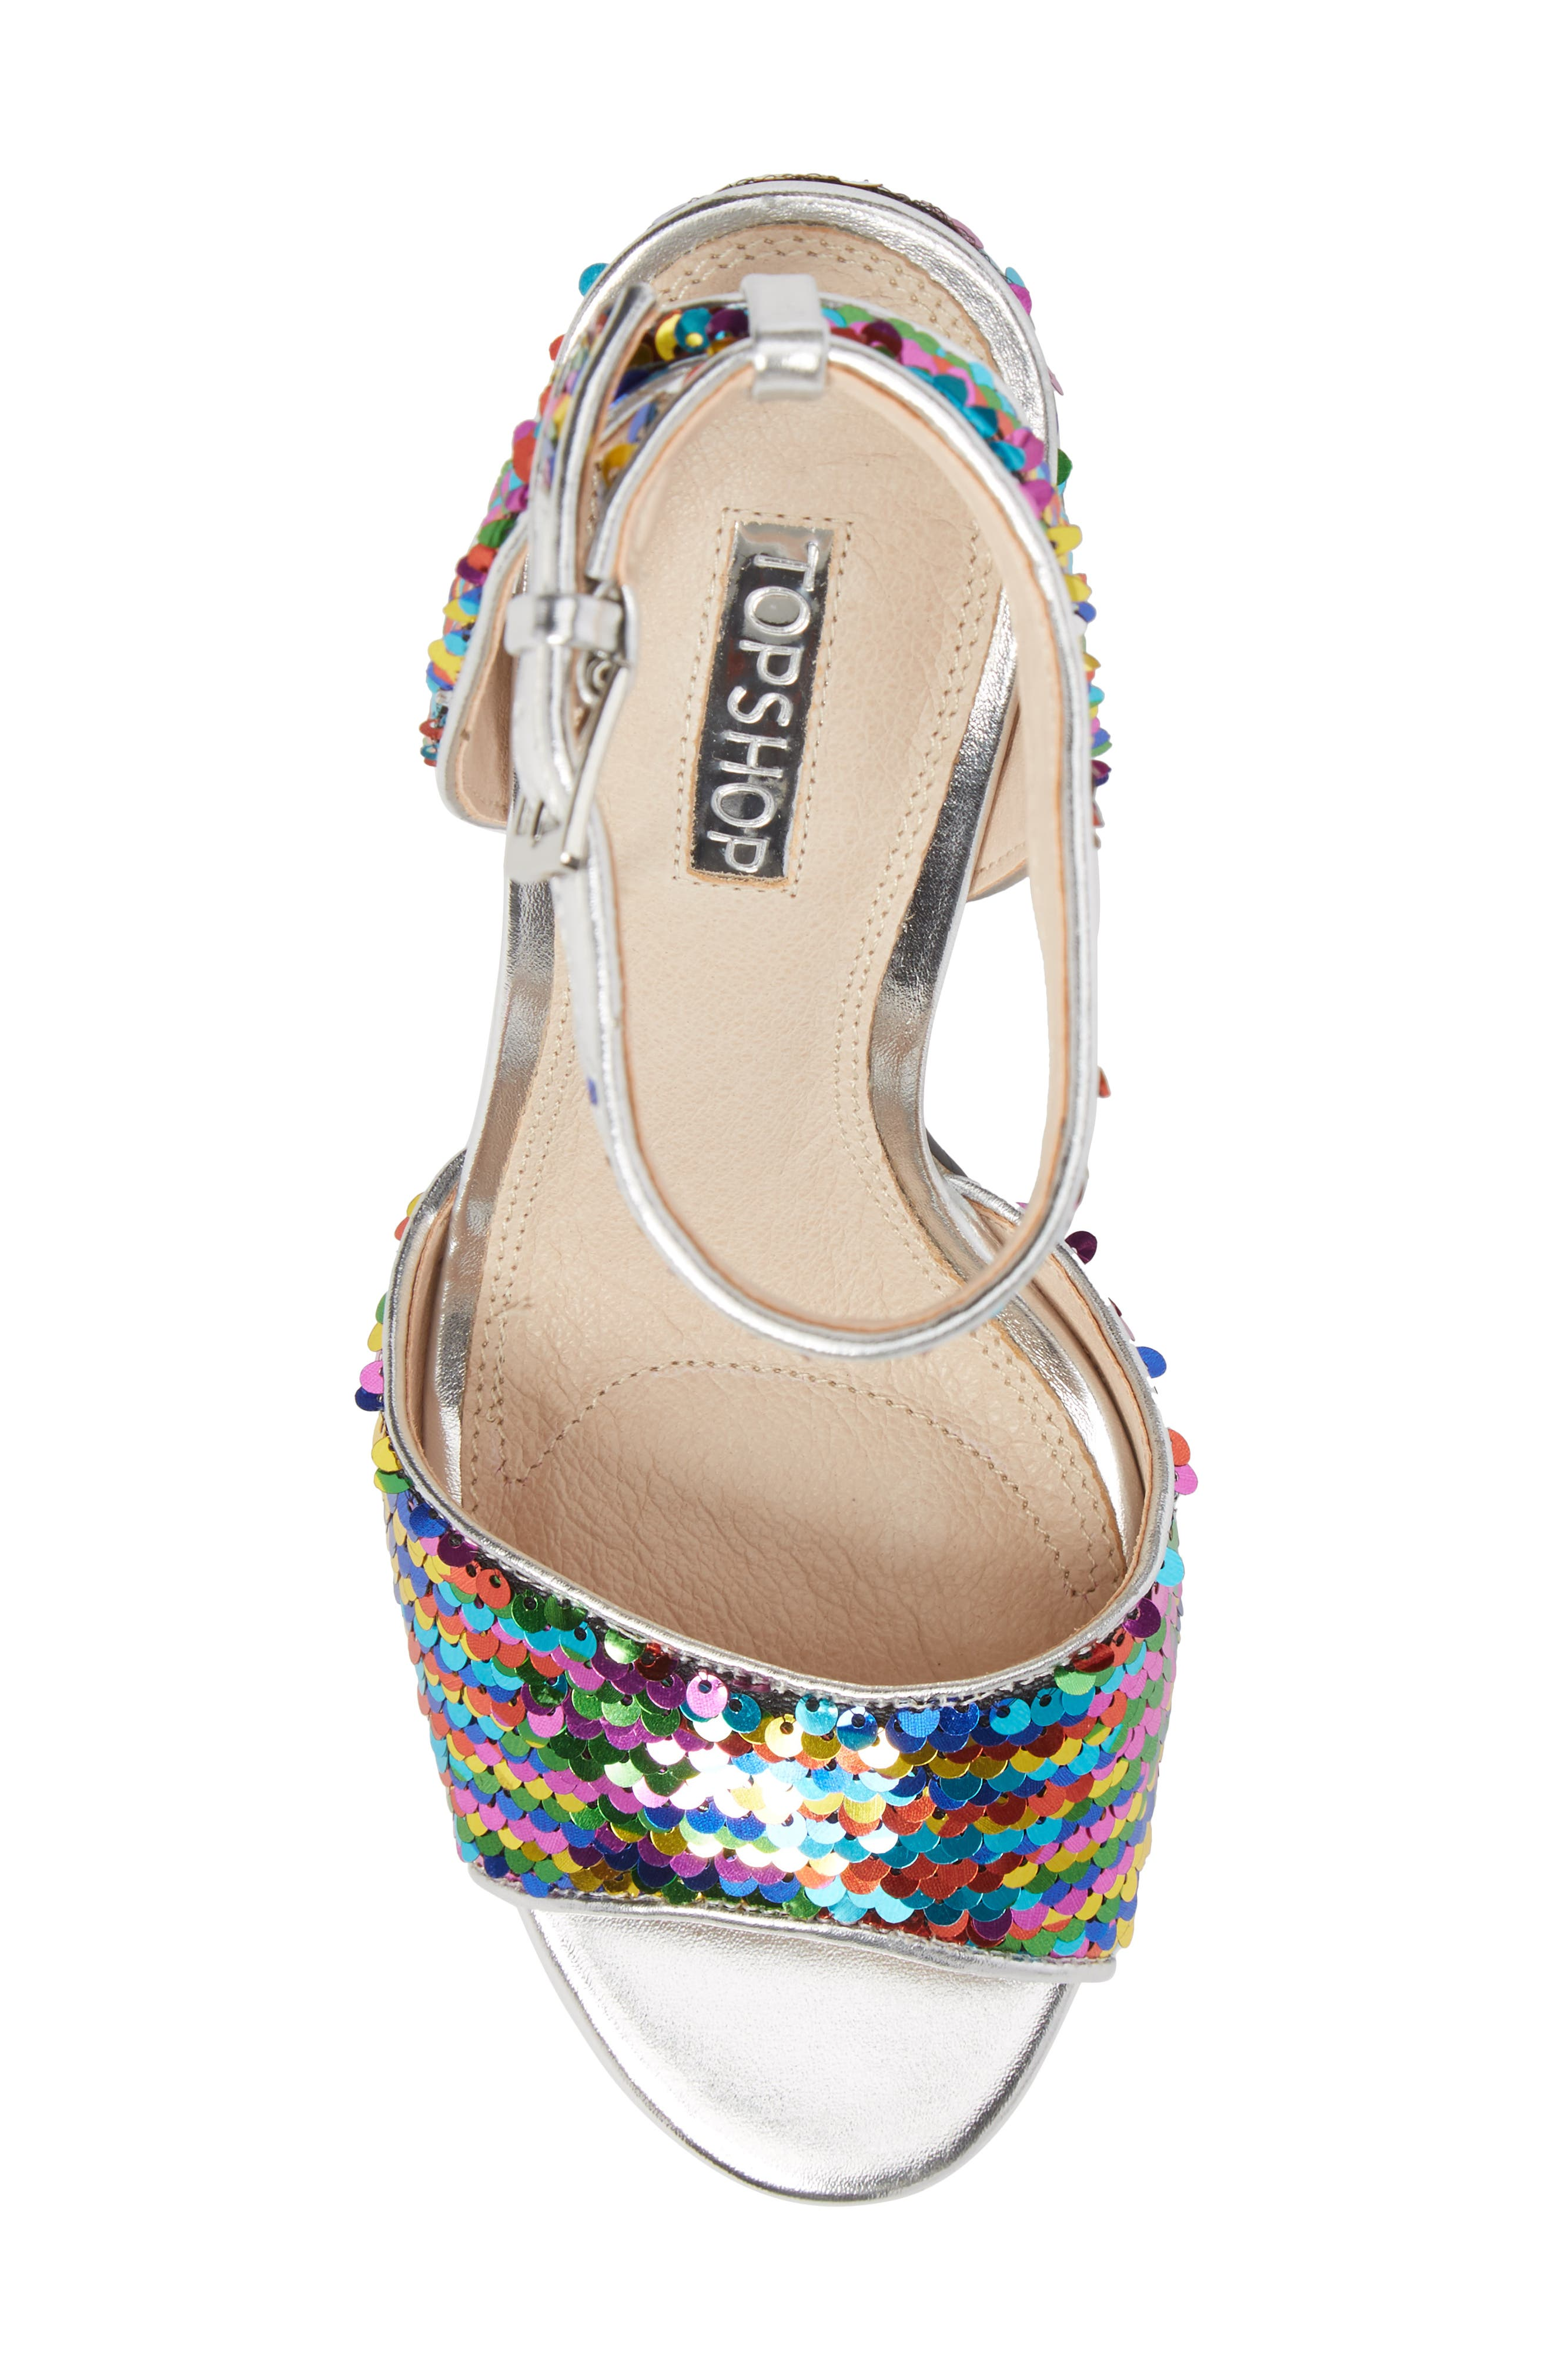 Reaction Sequin Block Heel Sandal,                             Alternate thumbnail 5, color,                             Silver Multi